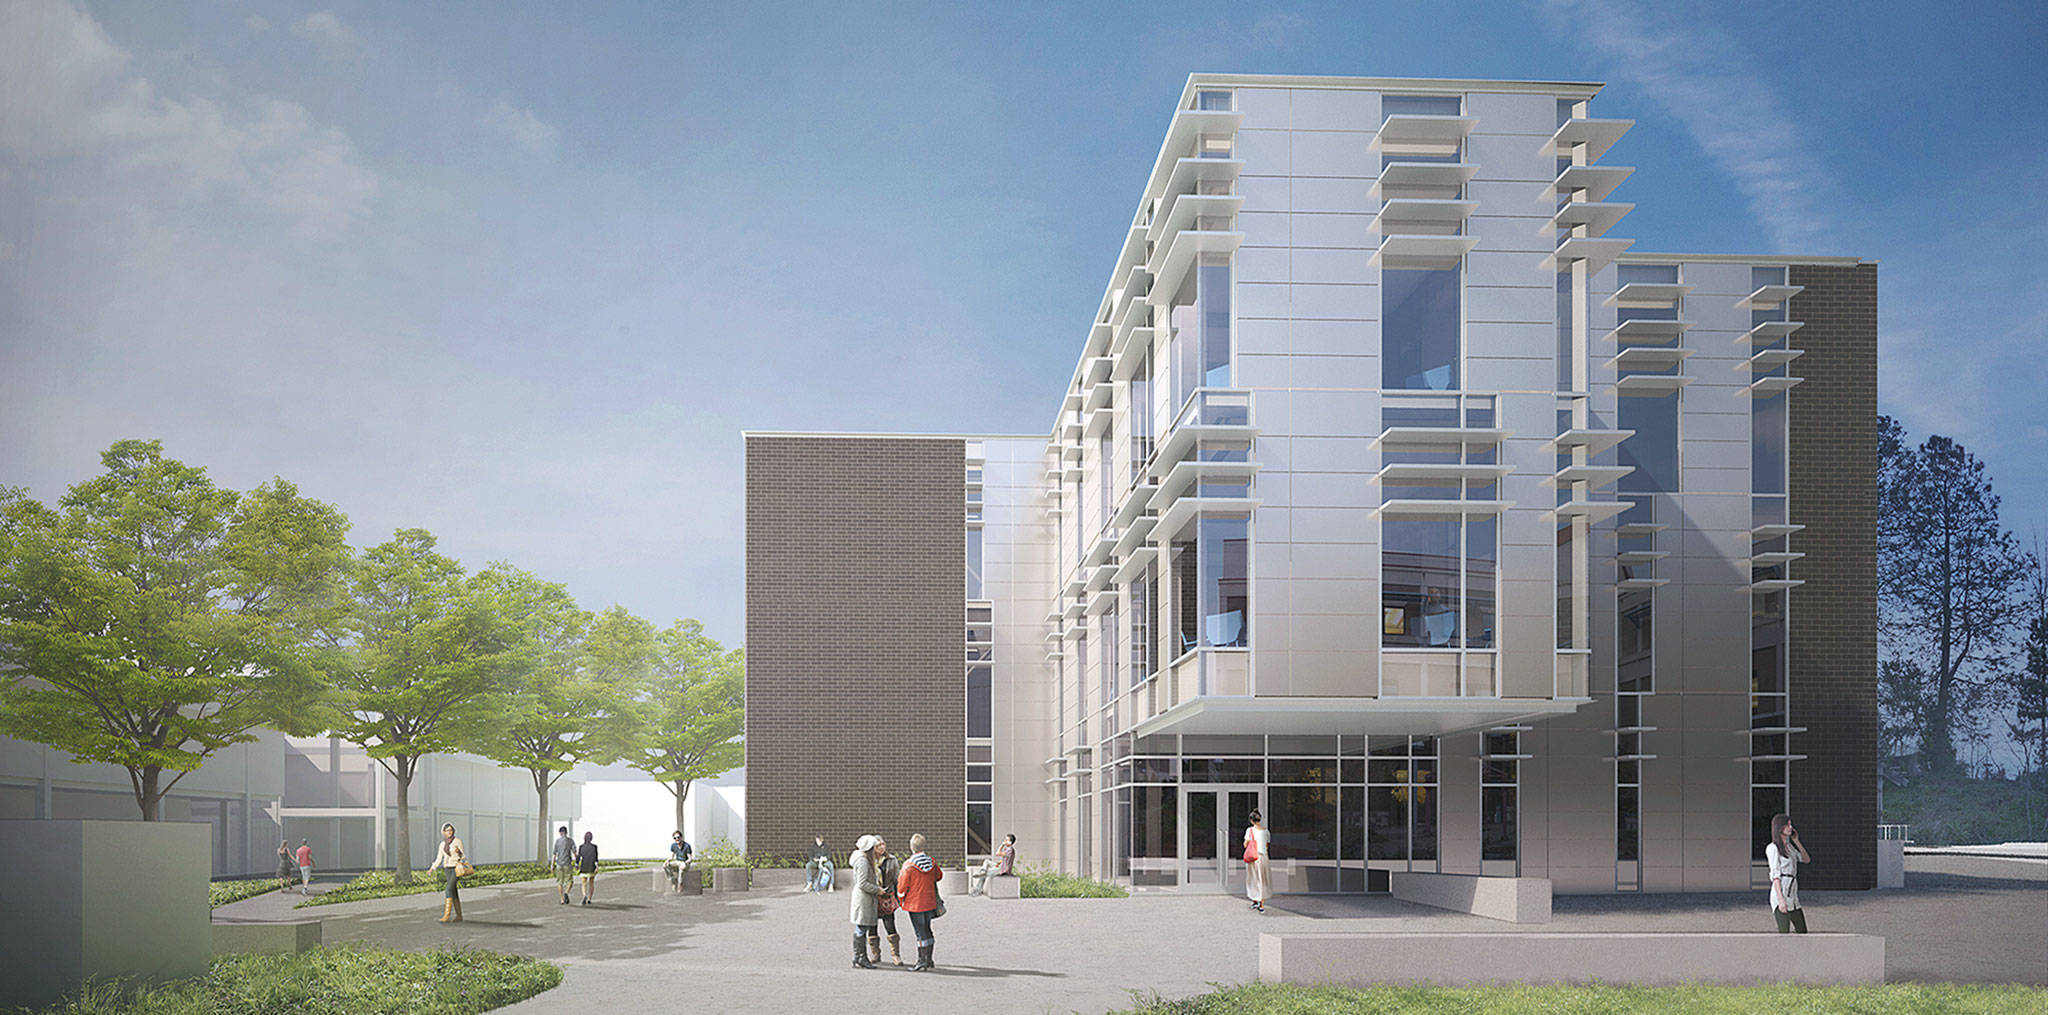 Edmonds Community College                                 An artist's rendering of the proposed new science, engineering and technology building at Edmonds Community College.